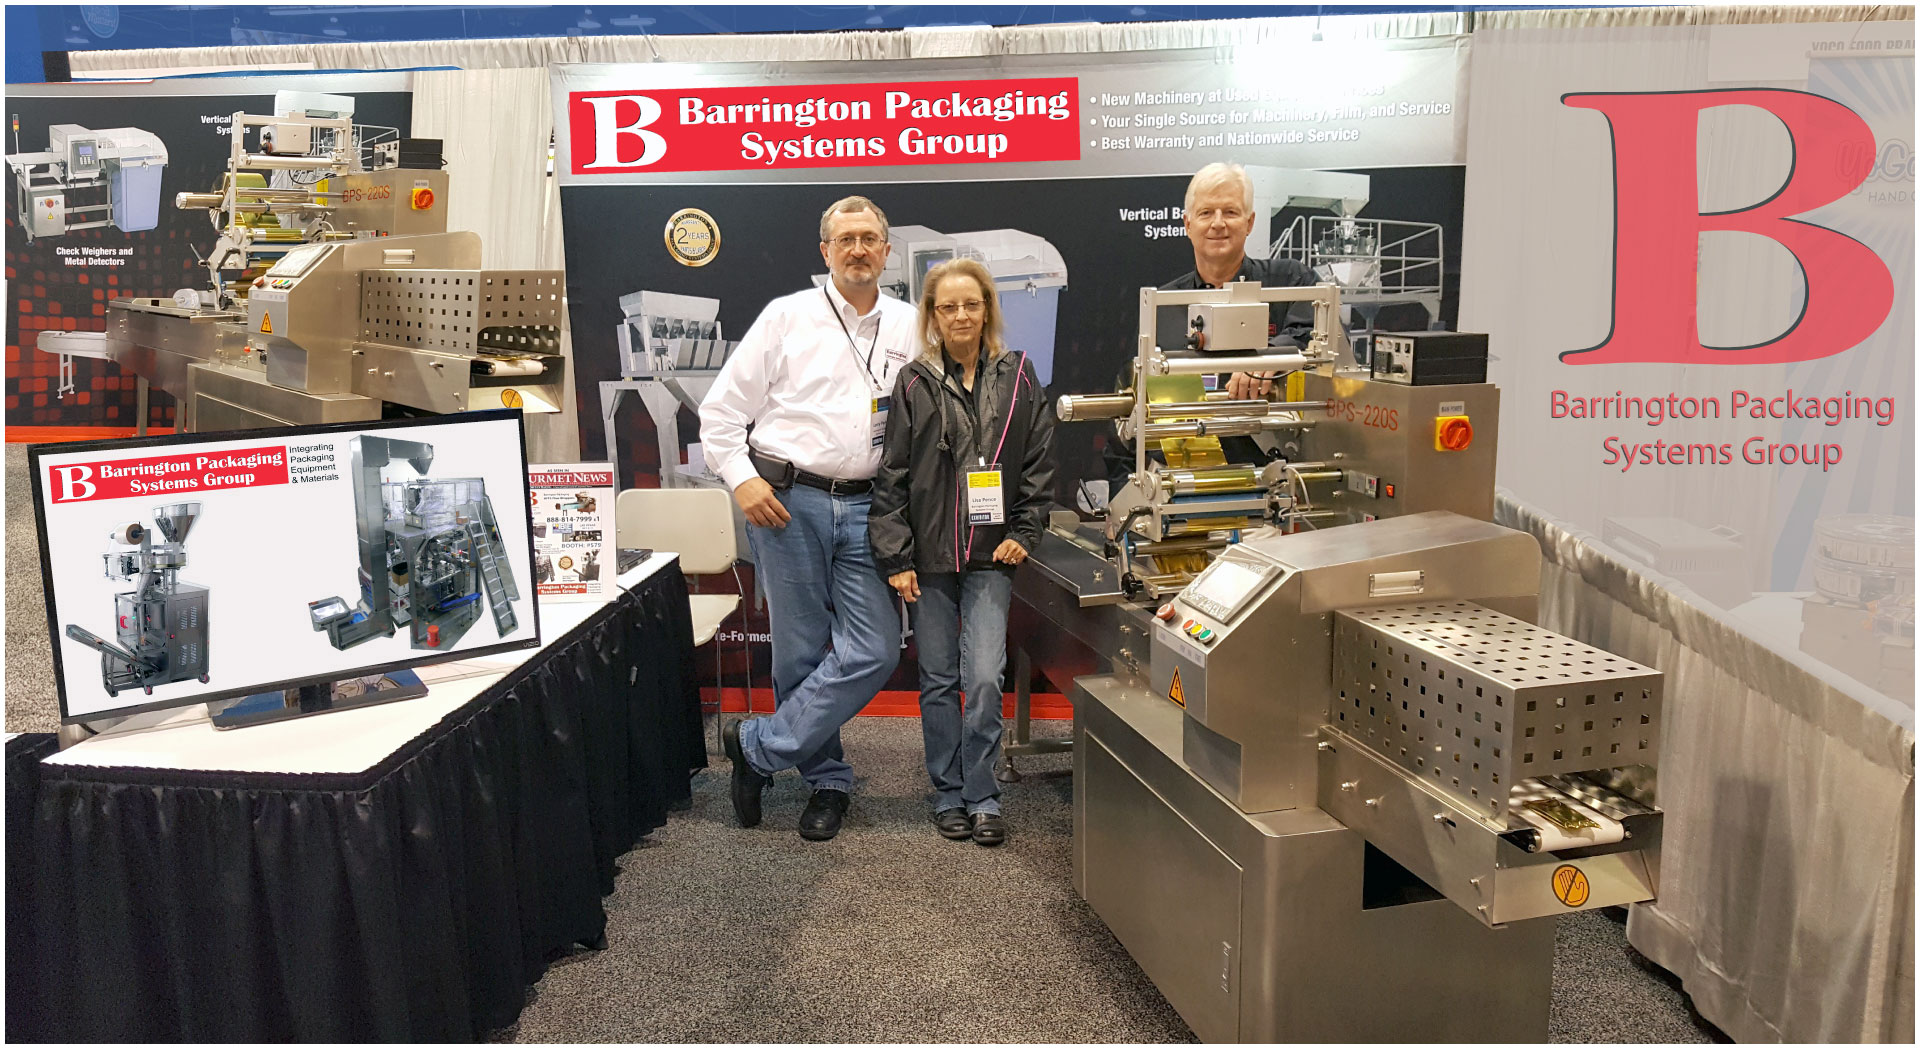 Barrington Packaging Systems Group Packaging Equipment Financing and Leasing Options 888-814-7999 Barrington Packaging offers affordable packaging equipment, high-quality packaging systems, new and used solutions for all of your packaging equipment needs